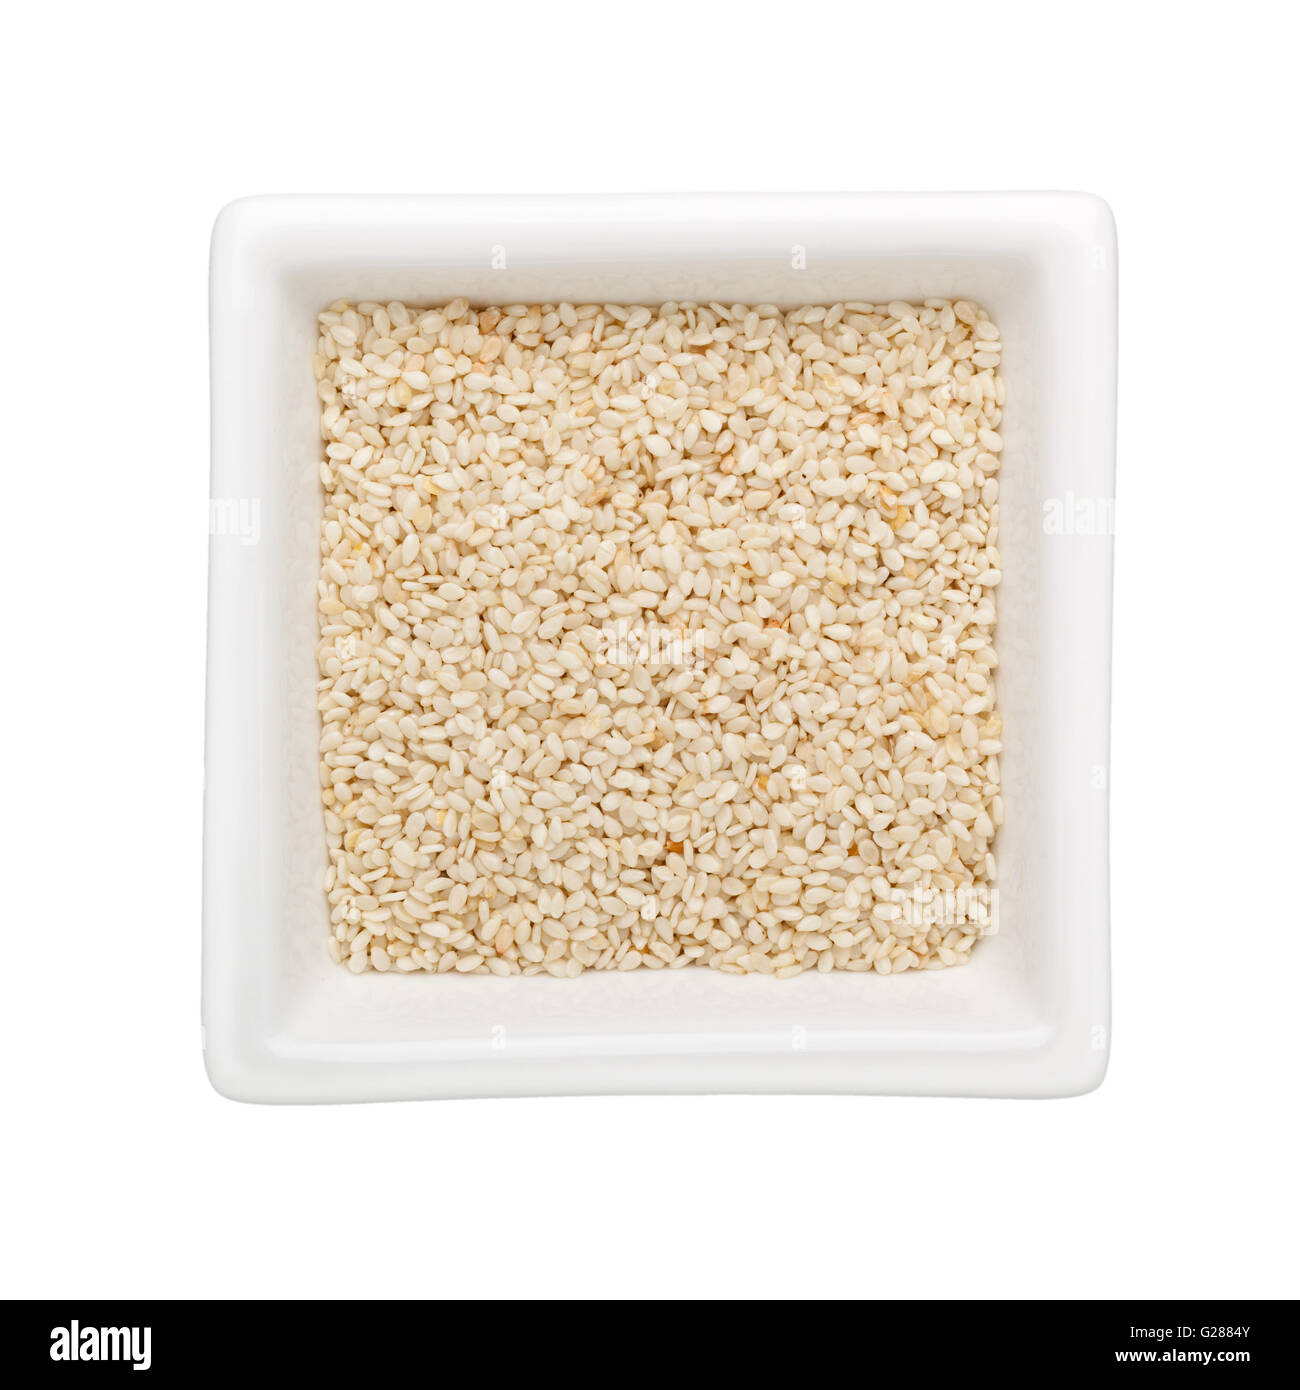 White sesame seeds in a square bowl isolated on white background - Stock Image